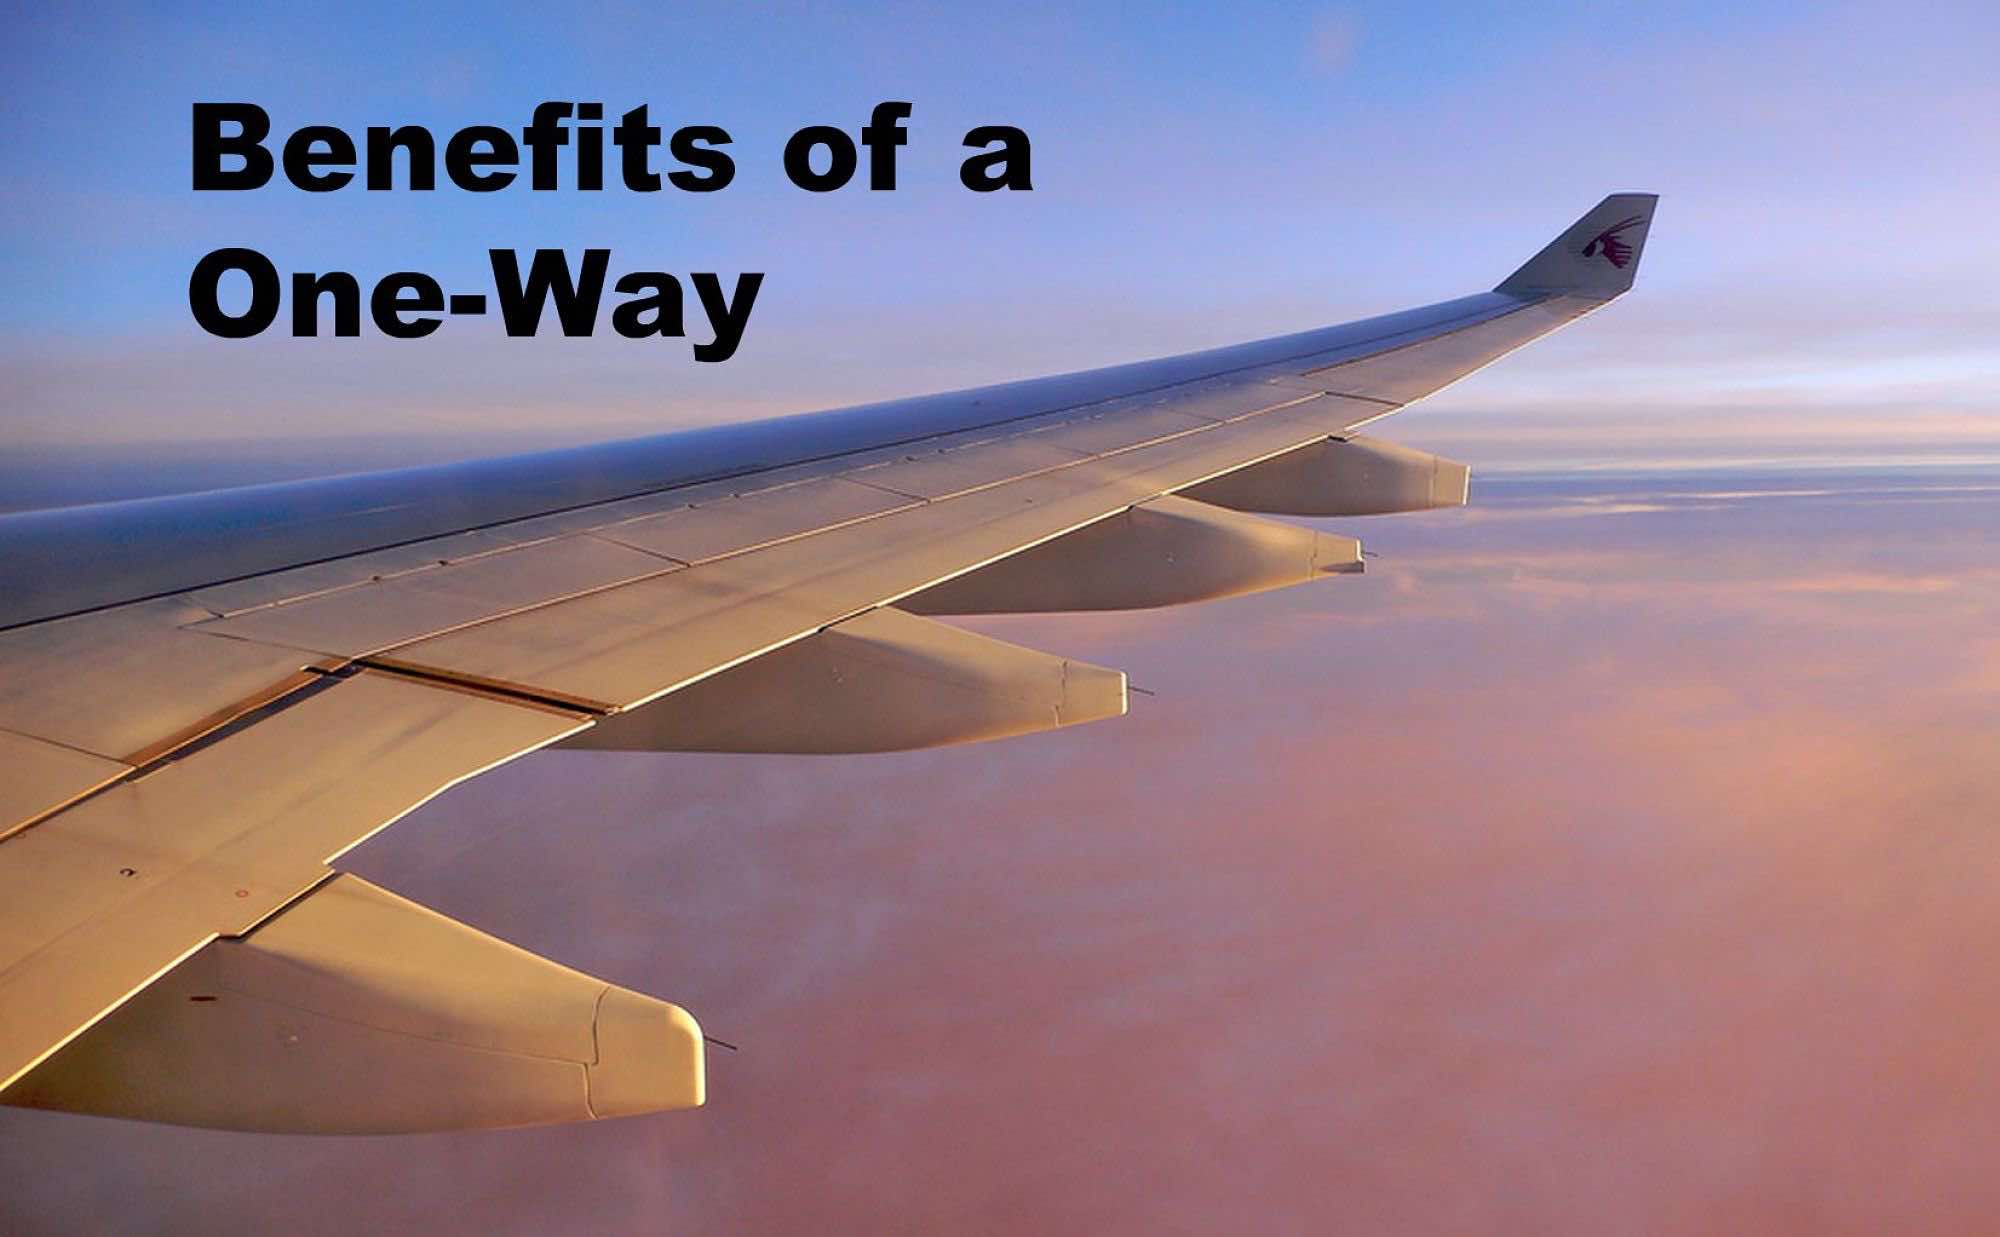 Benefits of Purchasing a One-Way Ticket